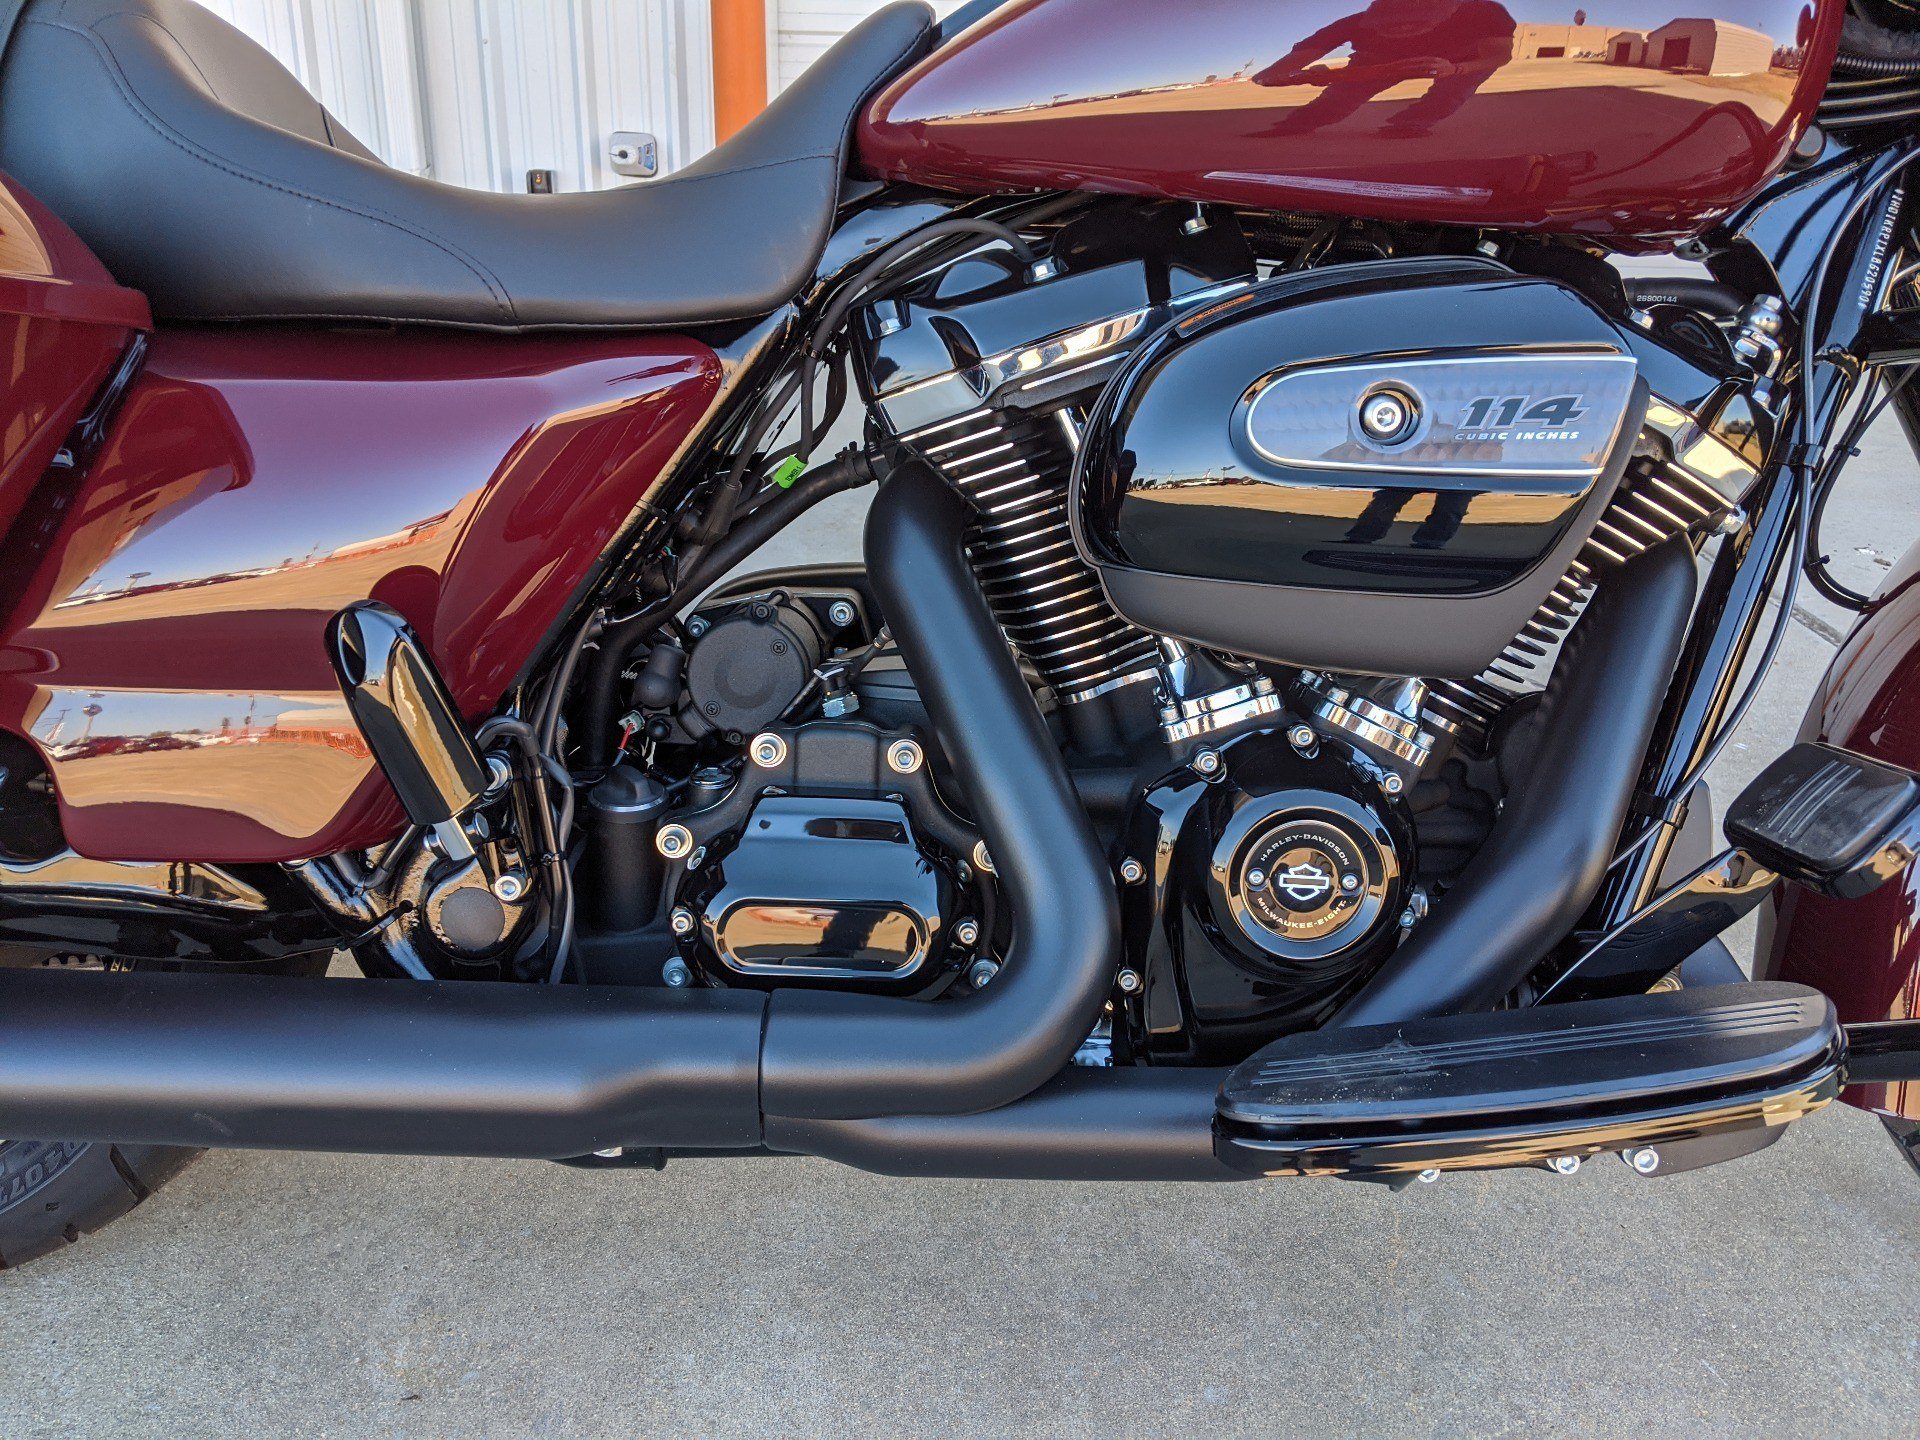 2020 Harley-Davidson Street Glide® Special in Monroe, Louisiana - Photo 6